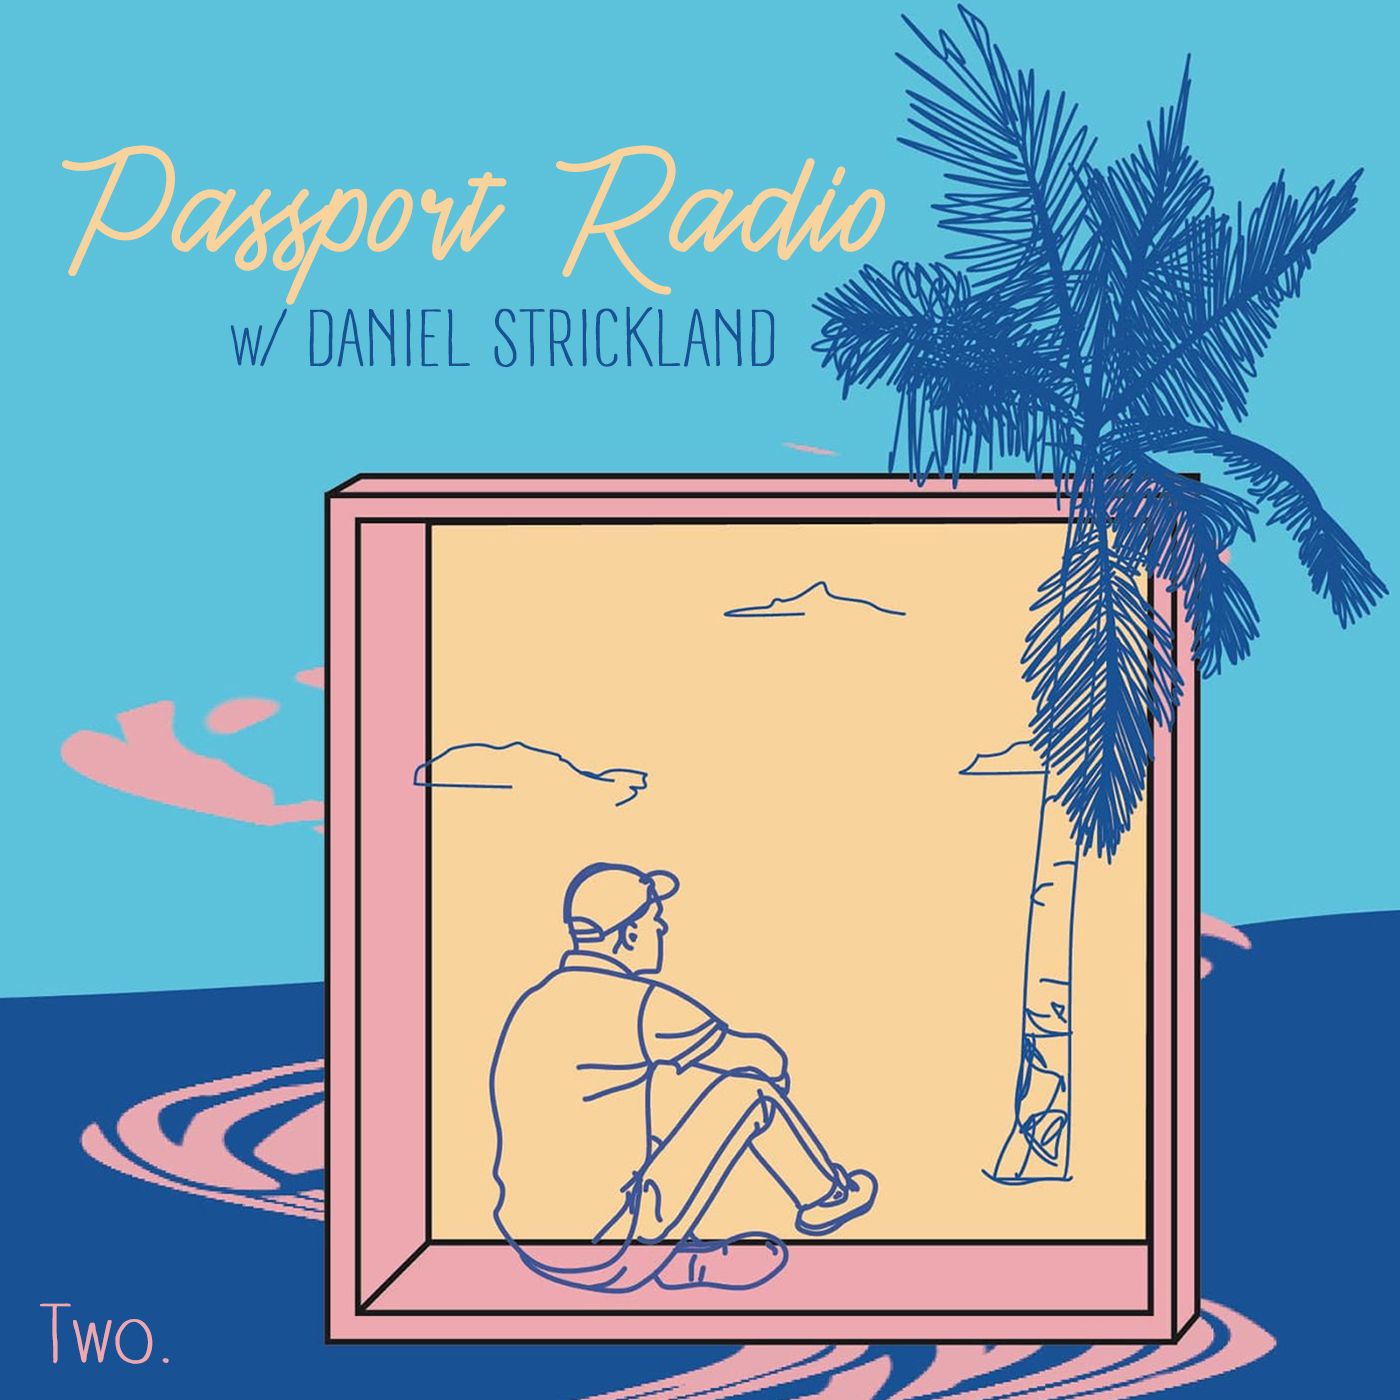 Passport Radio - 2